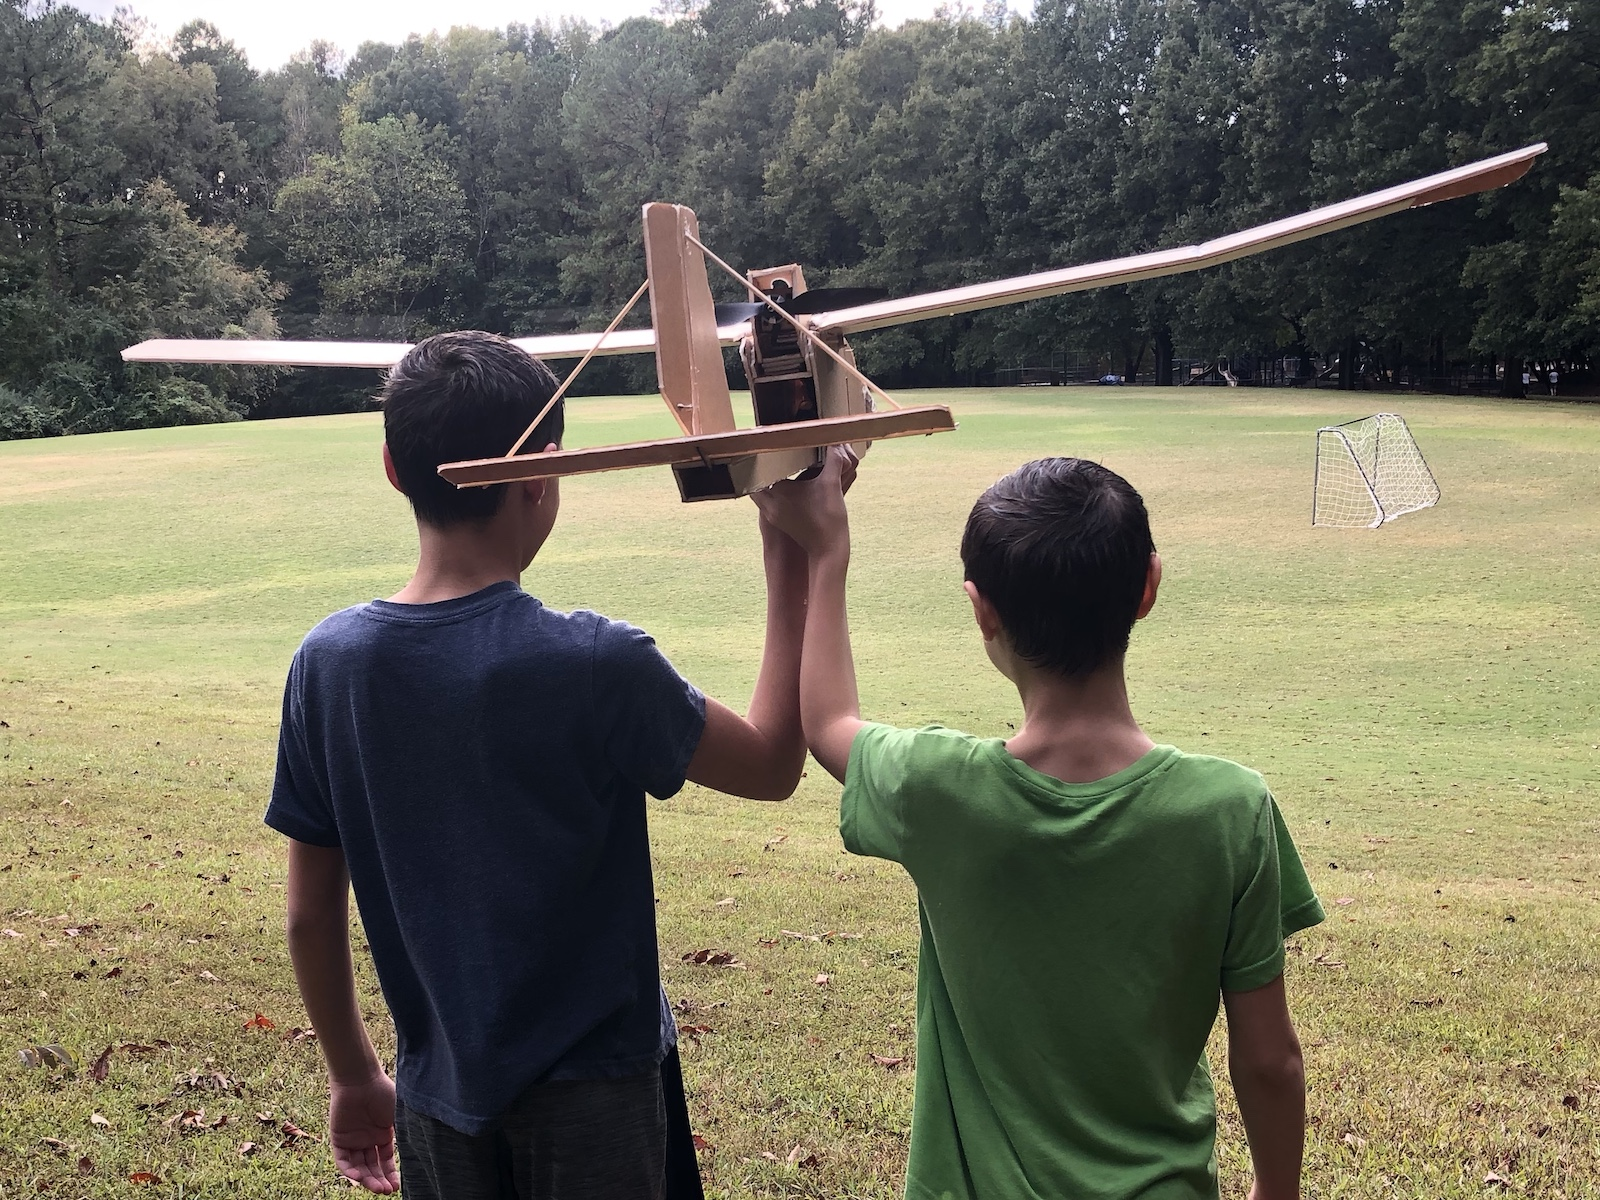 Project teamwork leads to successful flight